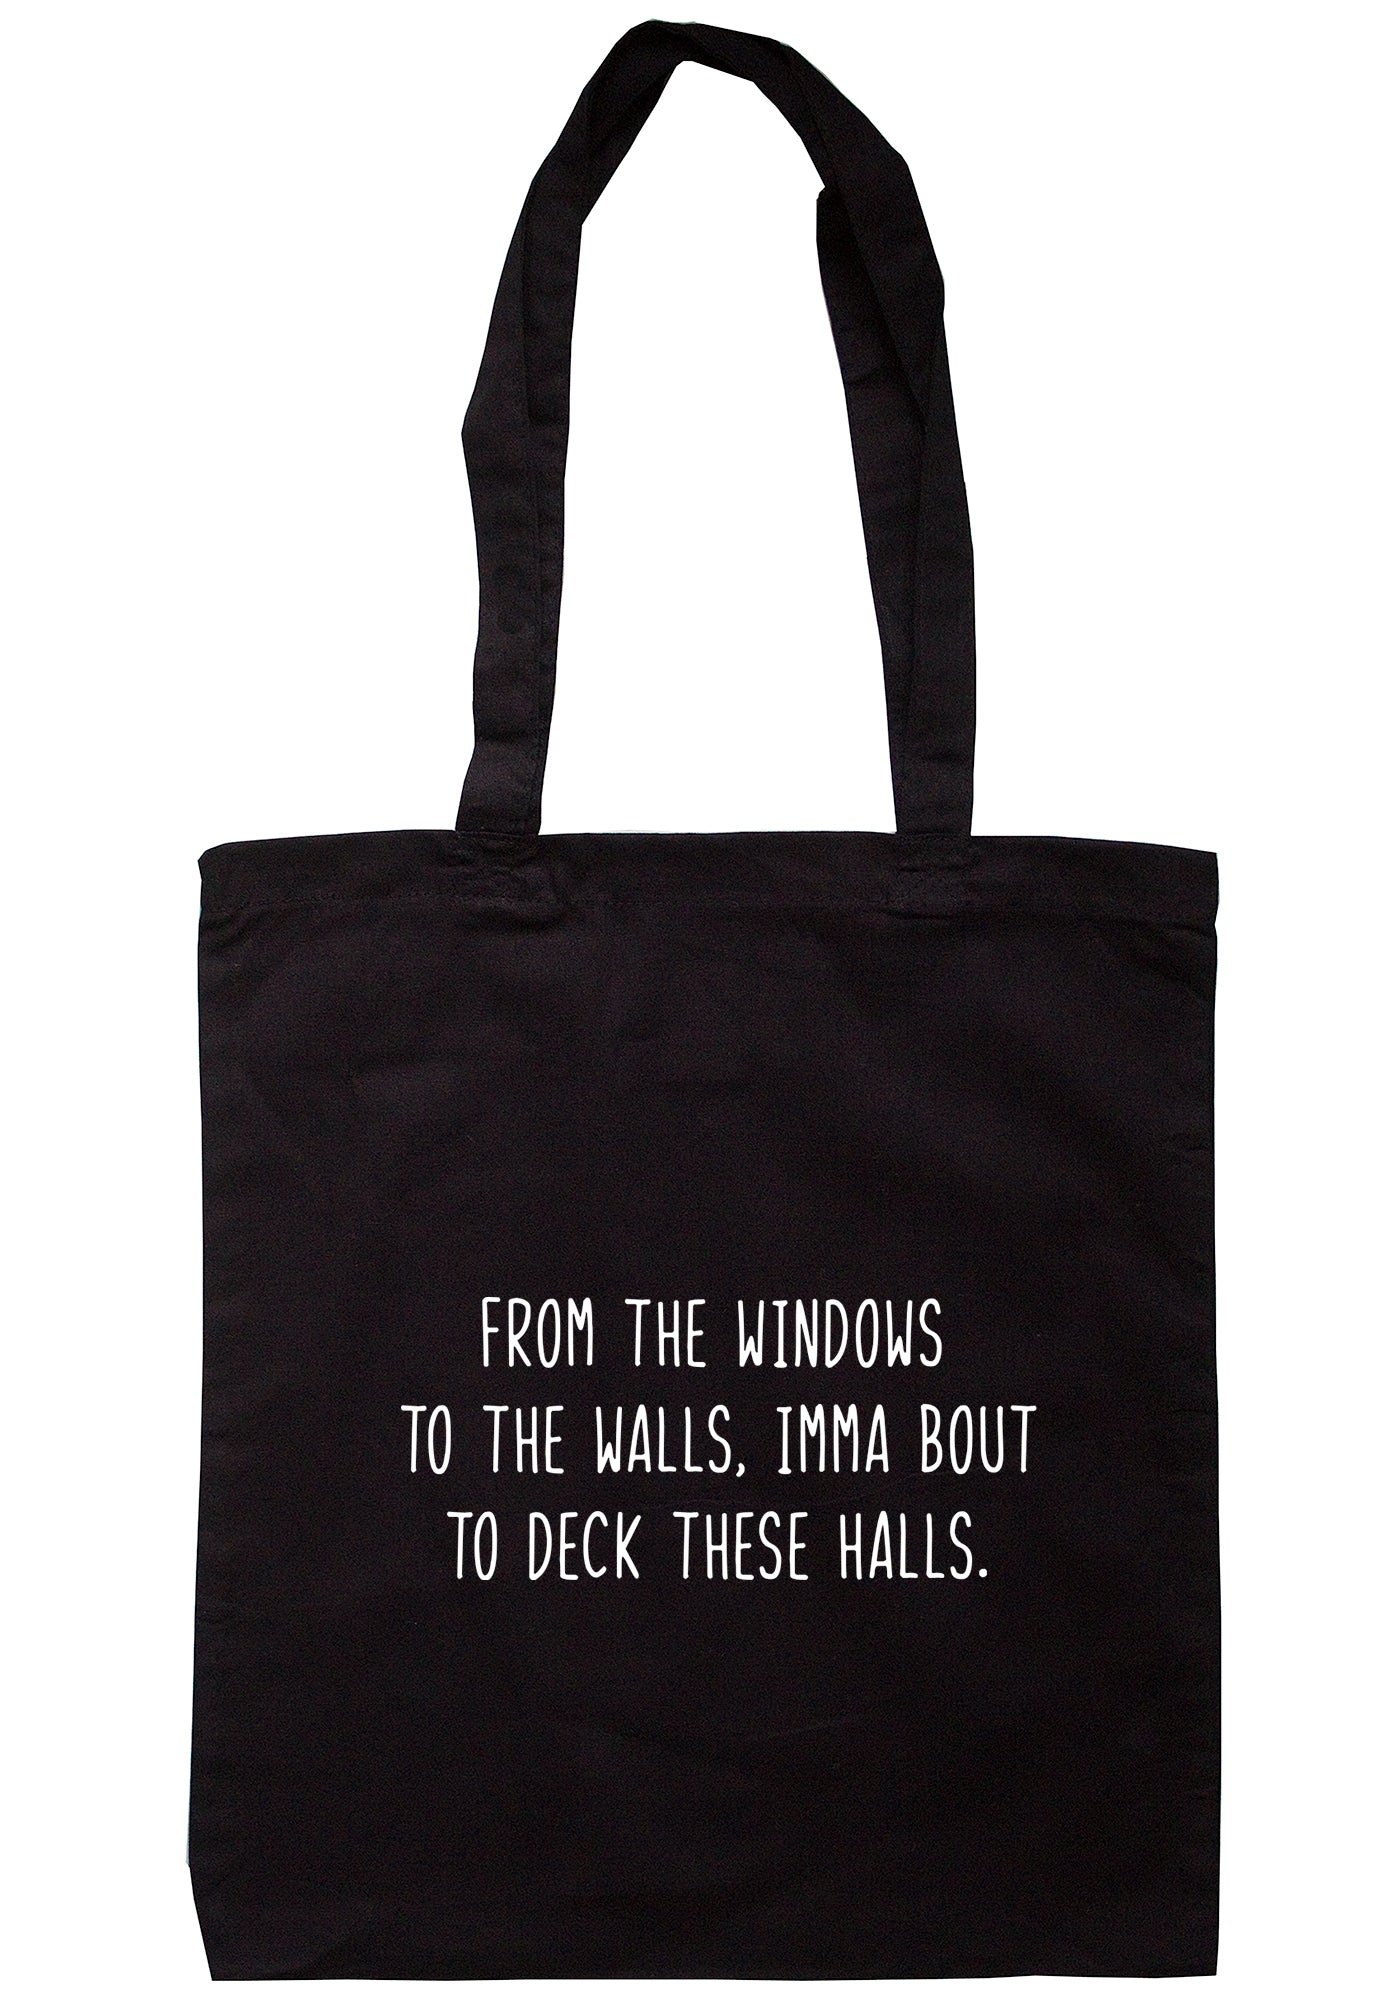 From The Windows To The Walls, Imma Bout To Deck These Halls Tote Bag S1214 - Illustrated Identity Ltd.